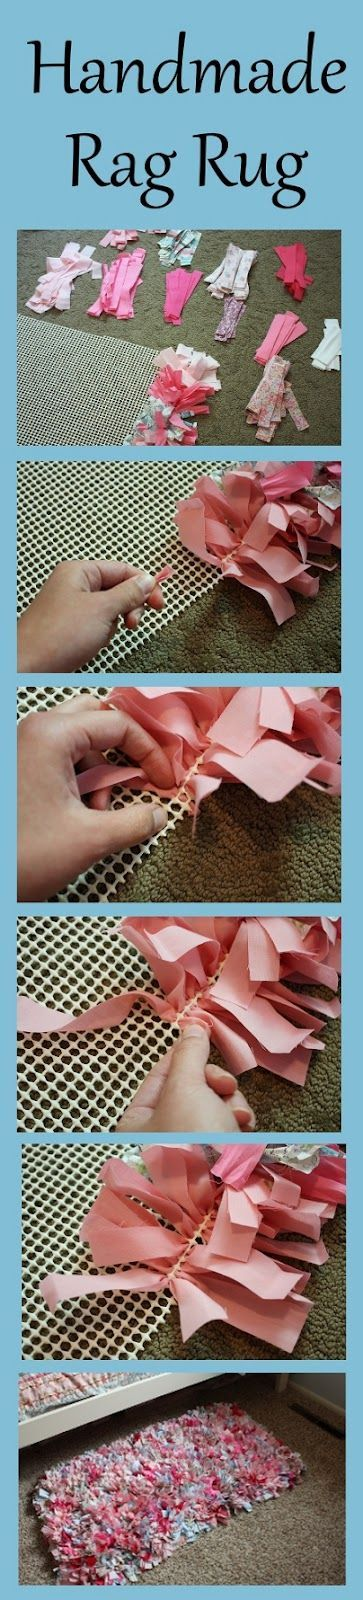 Easy rag rug tutorial! Perfect use for scrap | http://coolbraceletscollections.blogspot.com